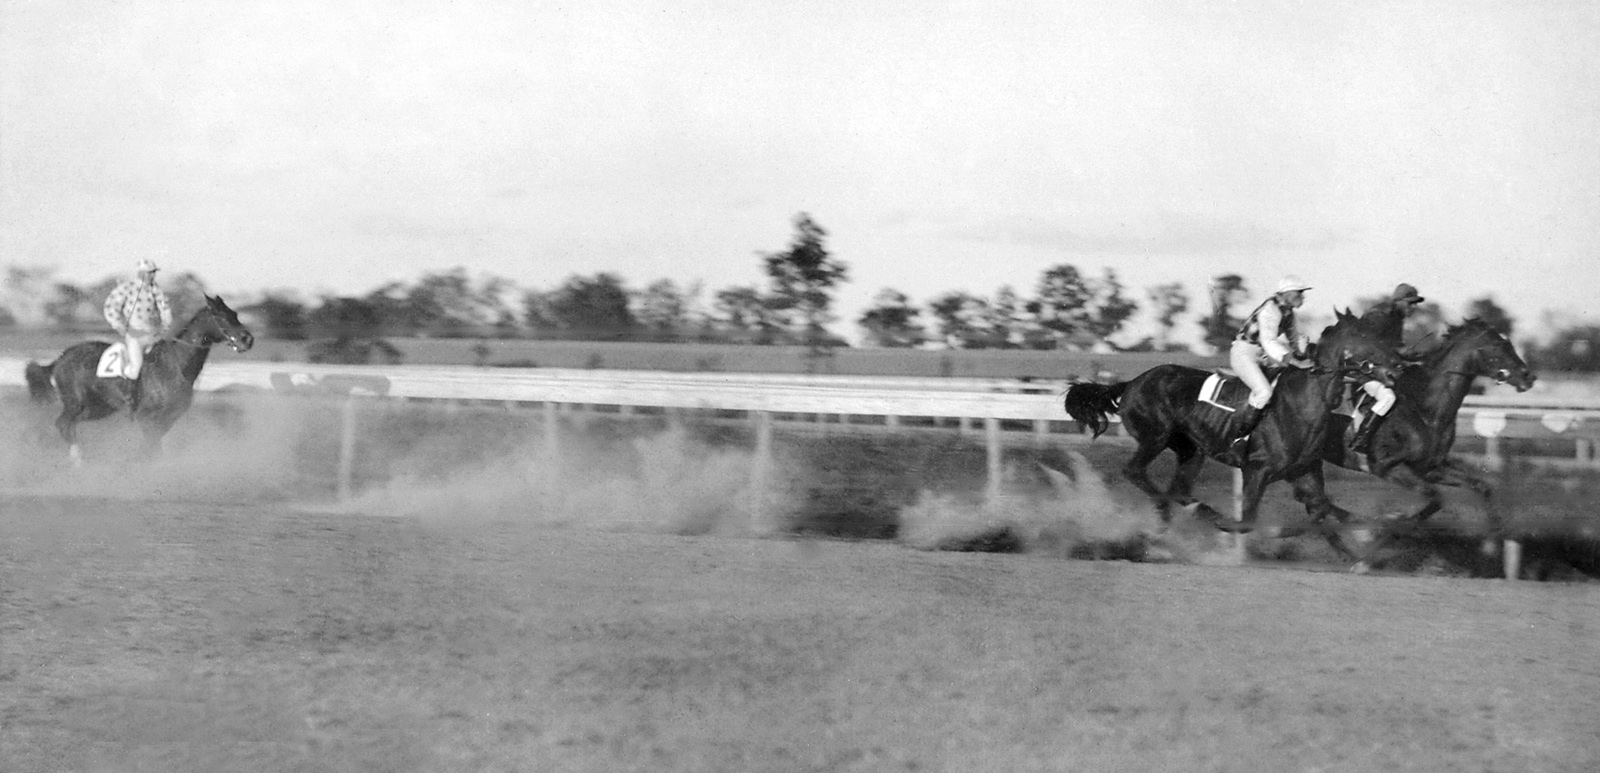 Henry of Navarre leading in his match race with Clifford (in 2nd) and Domino (in 3rd) at Morris Park on Oct. 6, 1894 (Keeneland Library Hemment Collection)